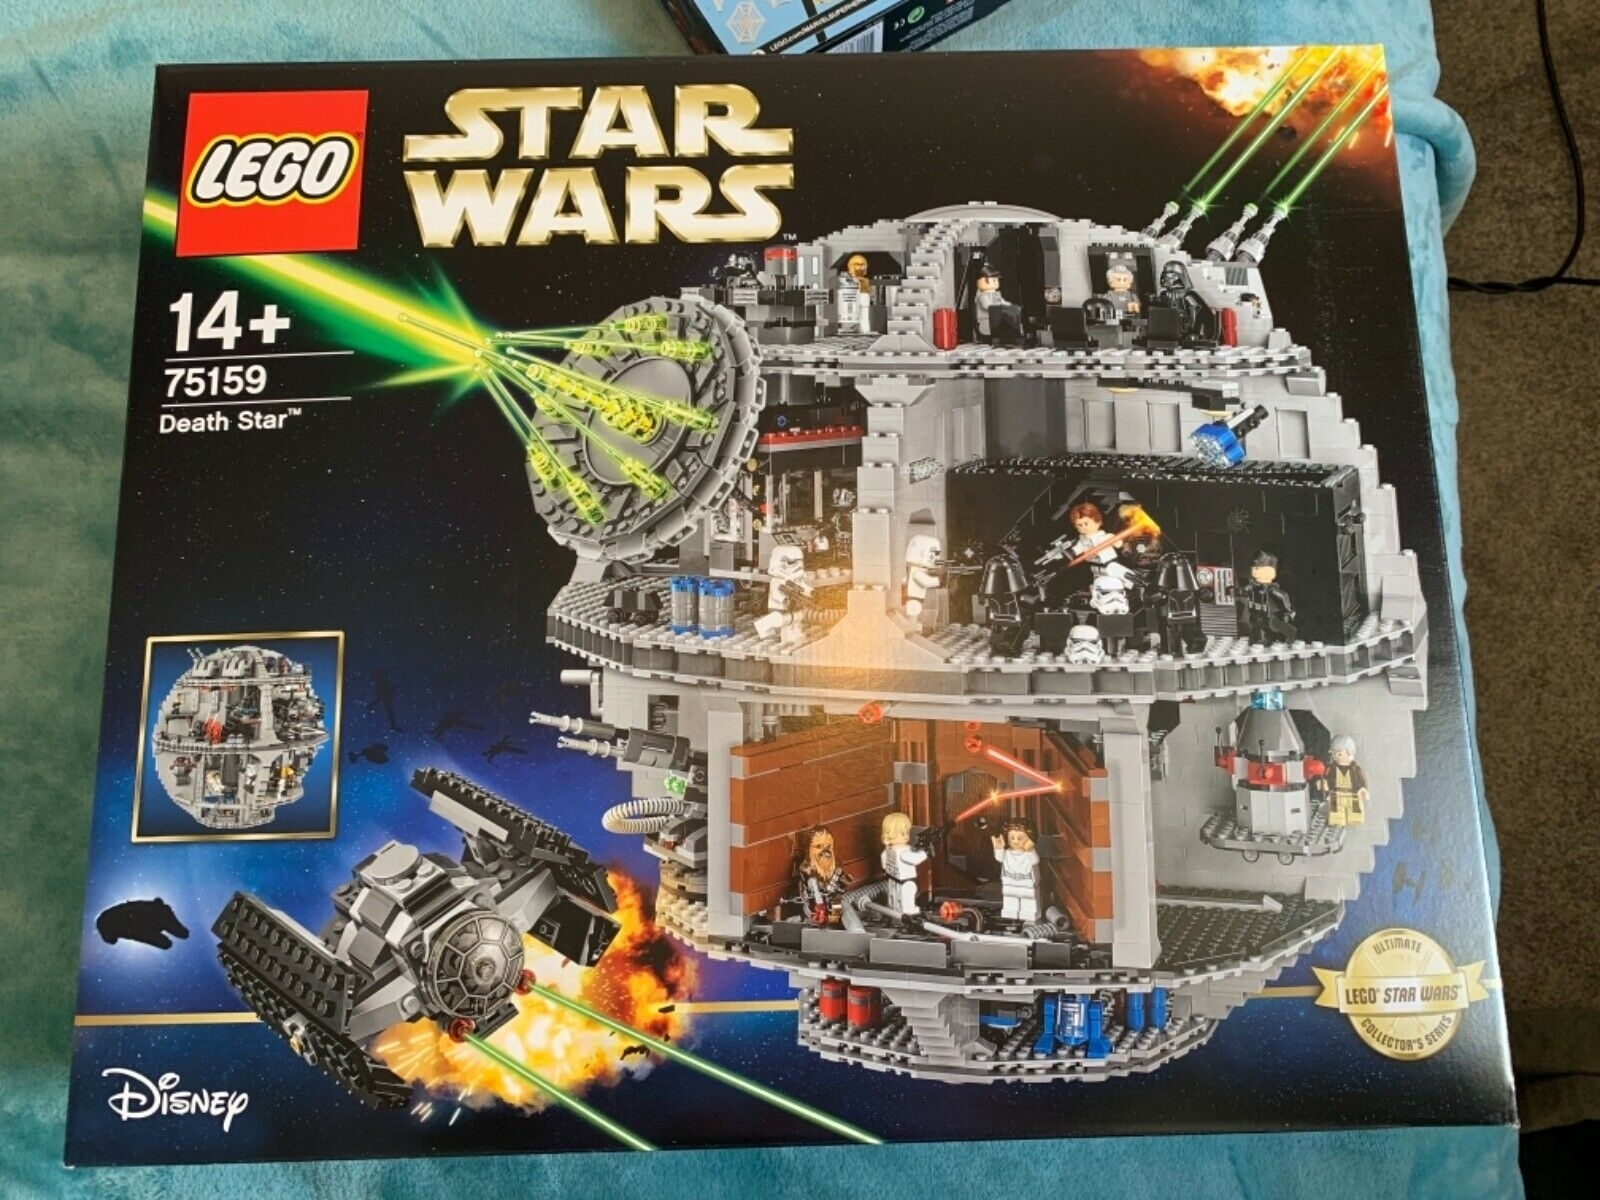 Lego 75159 Star Wars Death Star Iconic Construction Set - Xmas in The Lego Star Wars Chirstimas Set Code